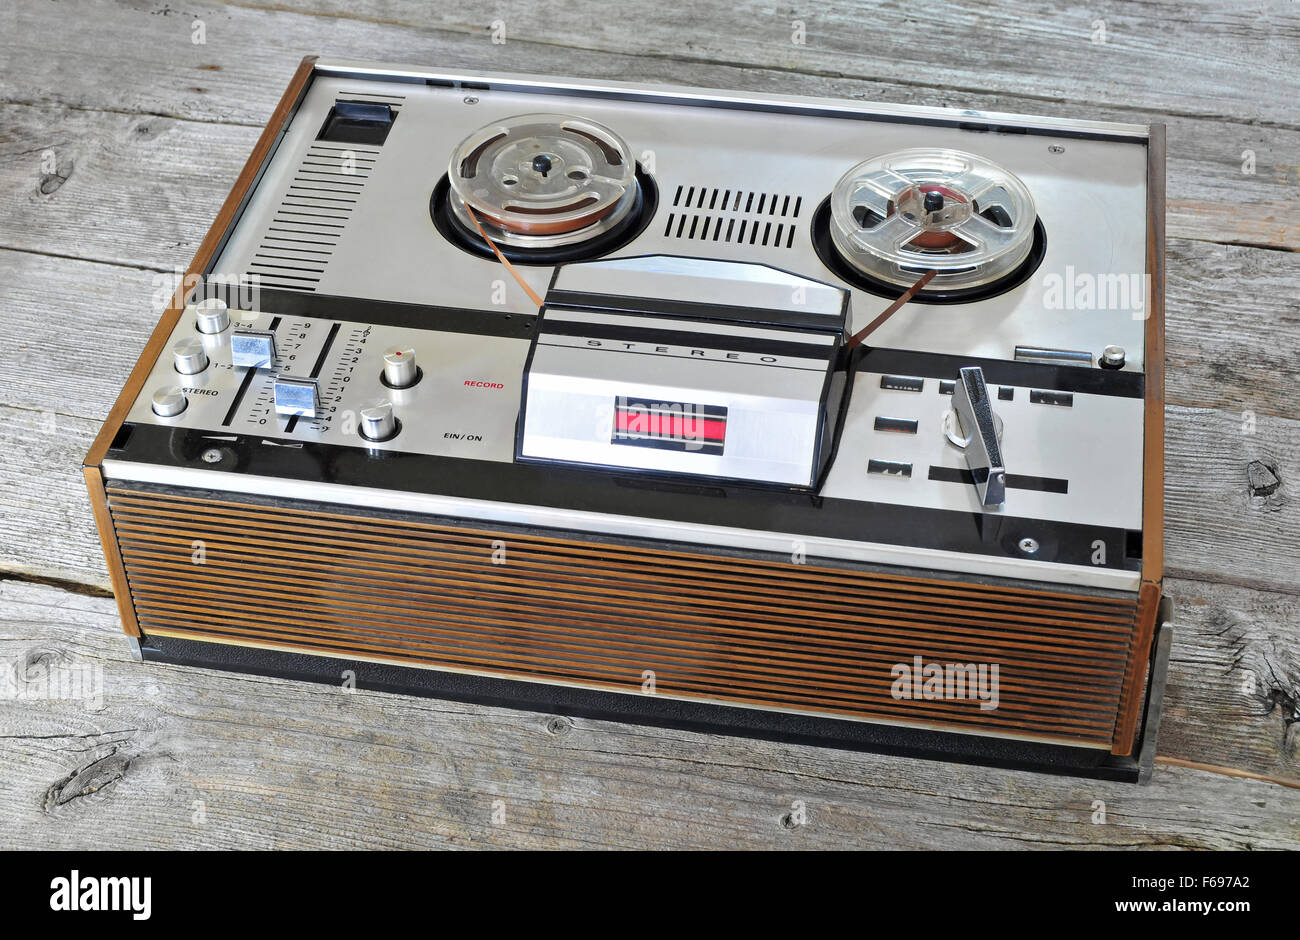 Photo of old reel to reel tape player - Stock Image